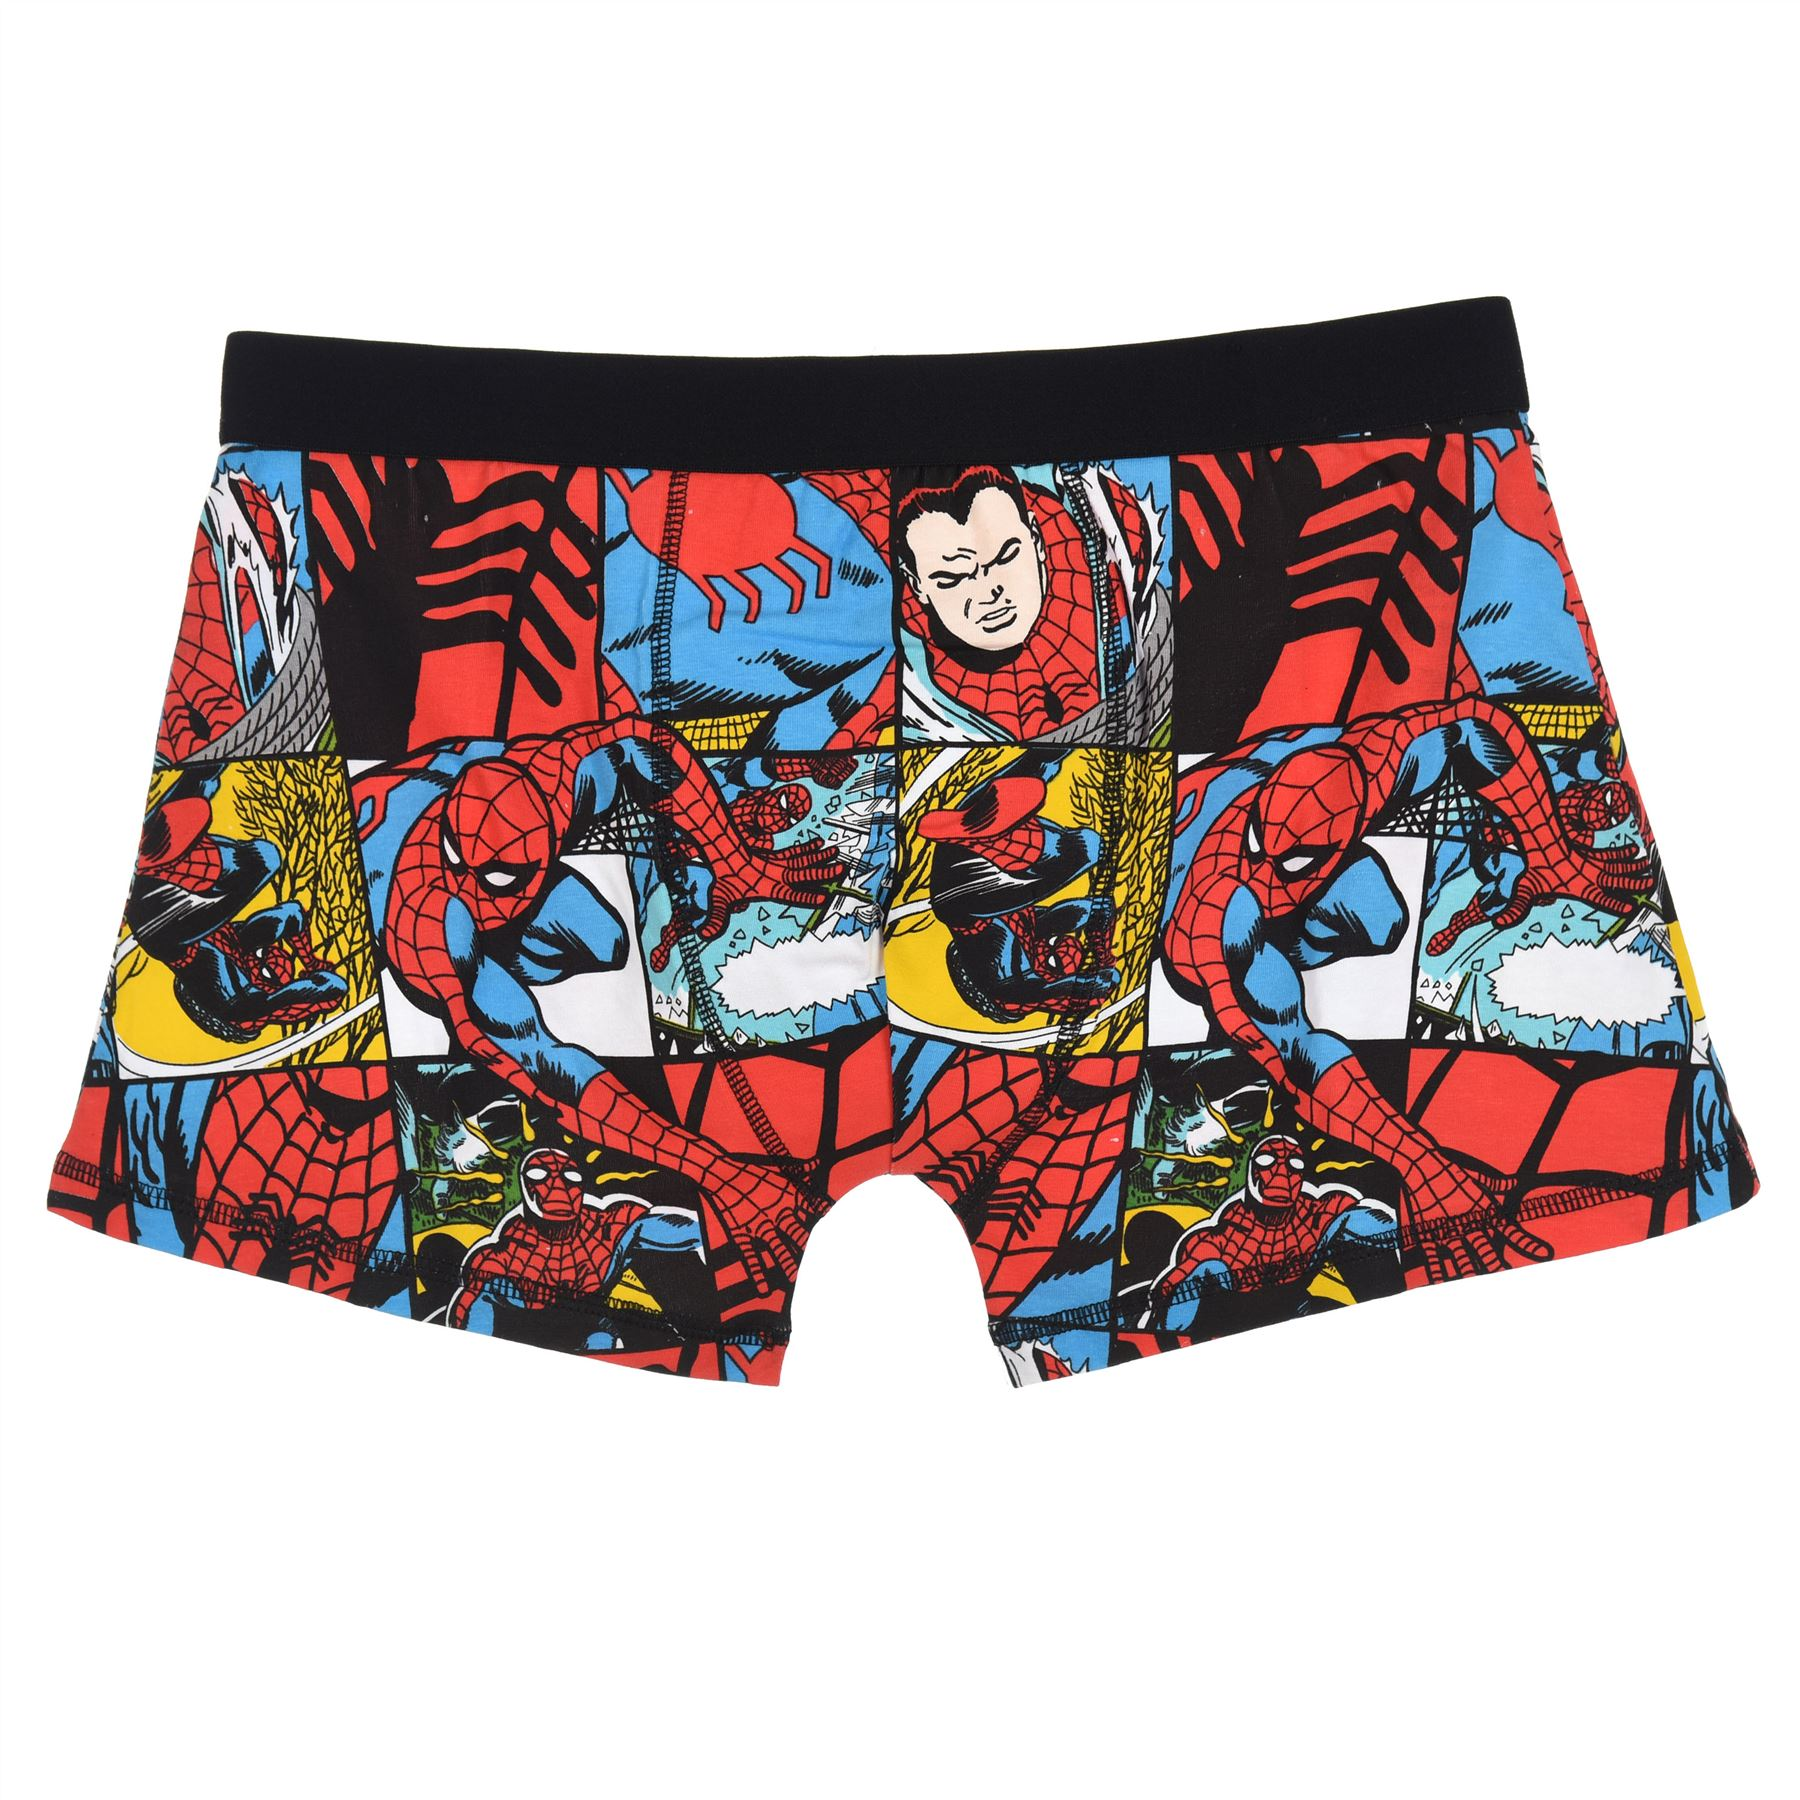 Mens-Official-Character-Trunks-Boxer-Shorts-Boxers-Underwear-2-Pack-Size-S-XL thumbnail 33